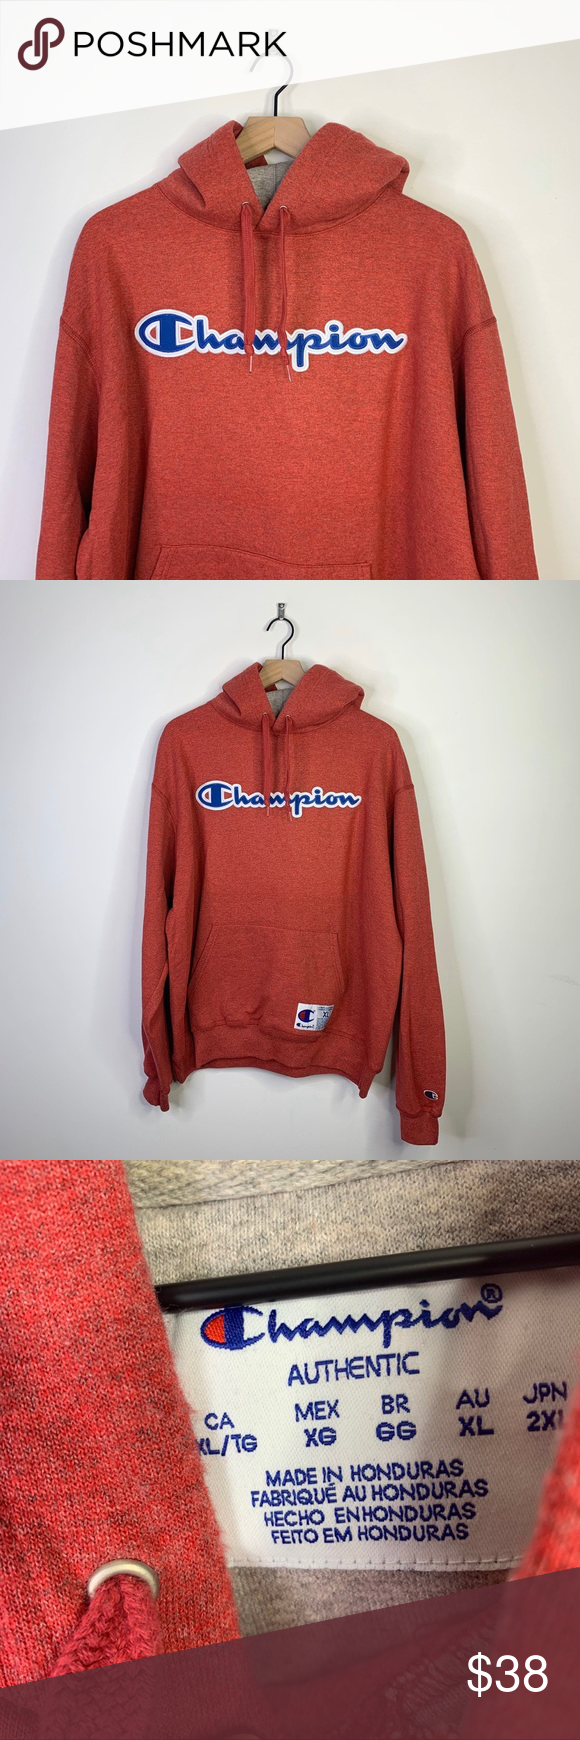 Champion 2000s Heathered Red Spellout Hoodie XL Older